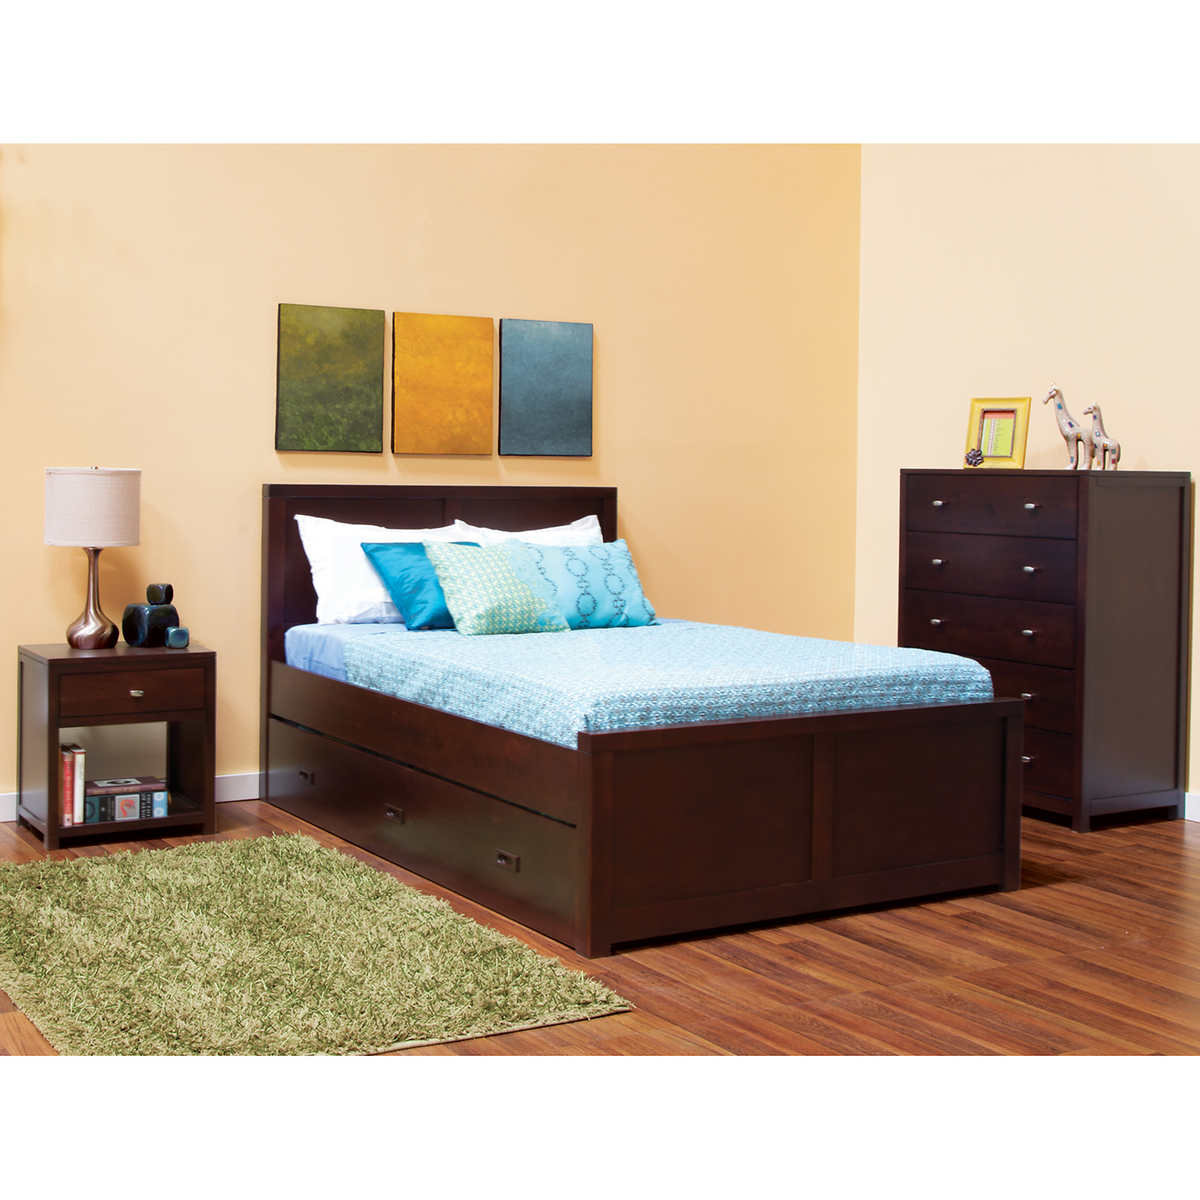 Peyton 3 Piece Full Bed Set